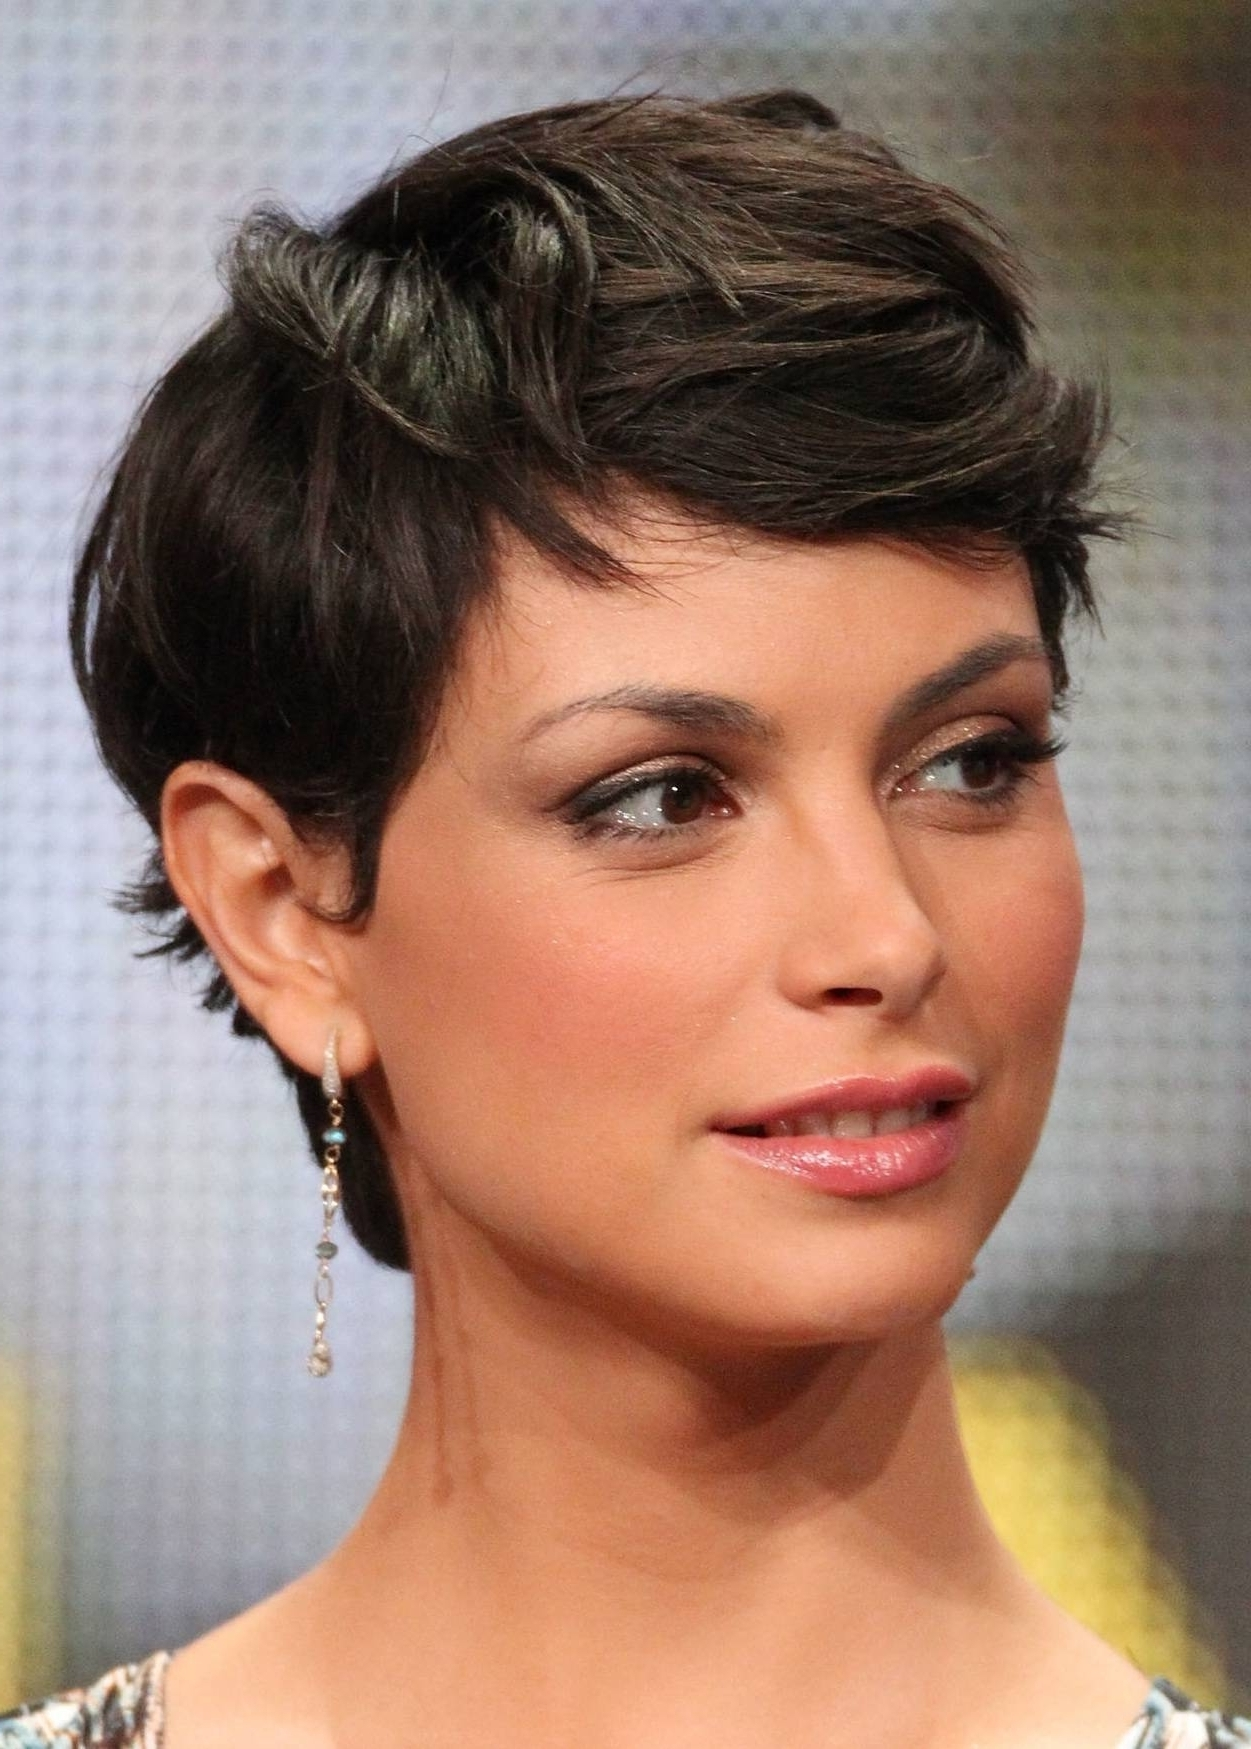 Short Pixie Styles Women Short Pixie Haircuts For Women With Curly Throughout Current Pixie Hairstyles For Curly Hair (View 5 of 15)